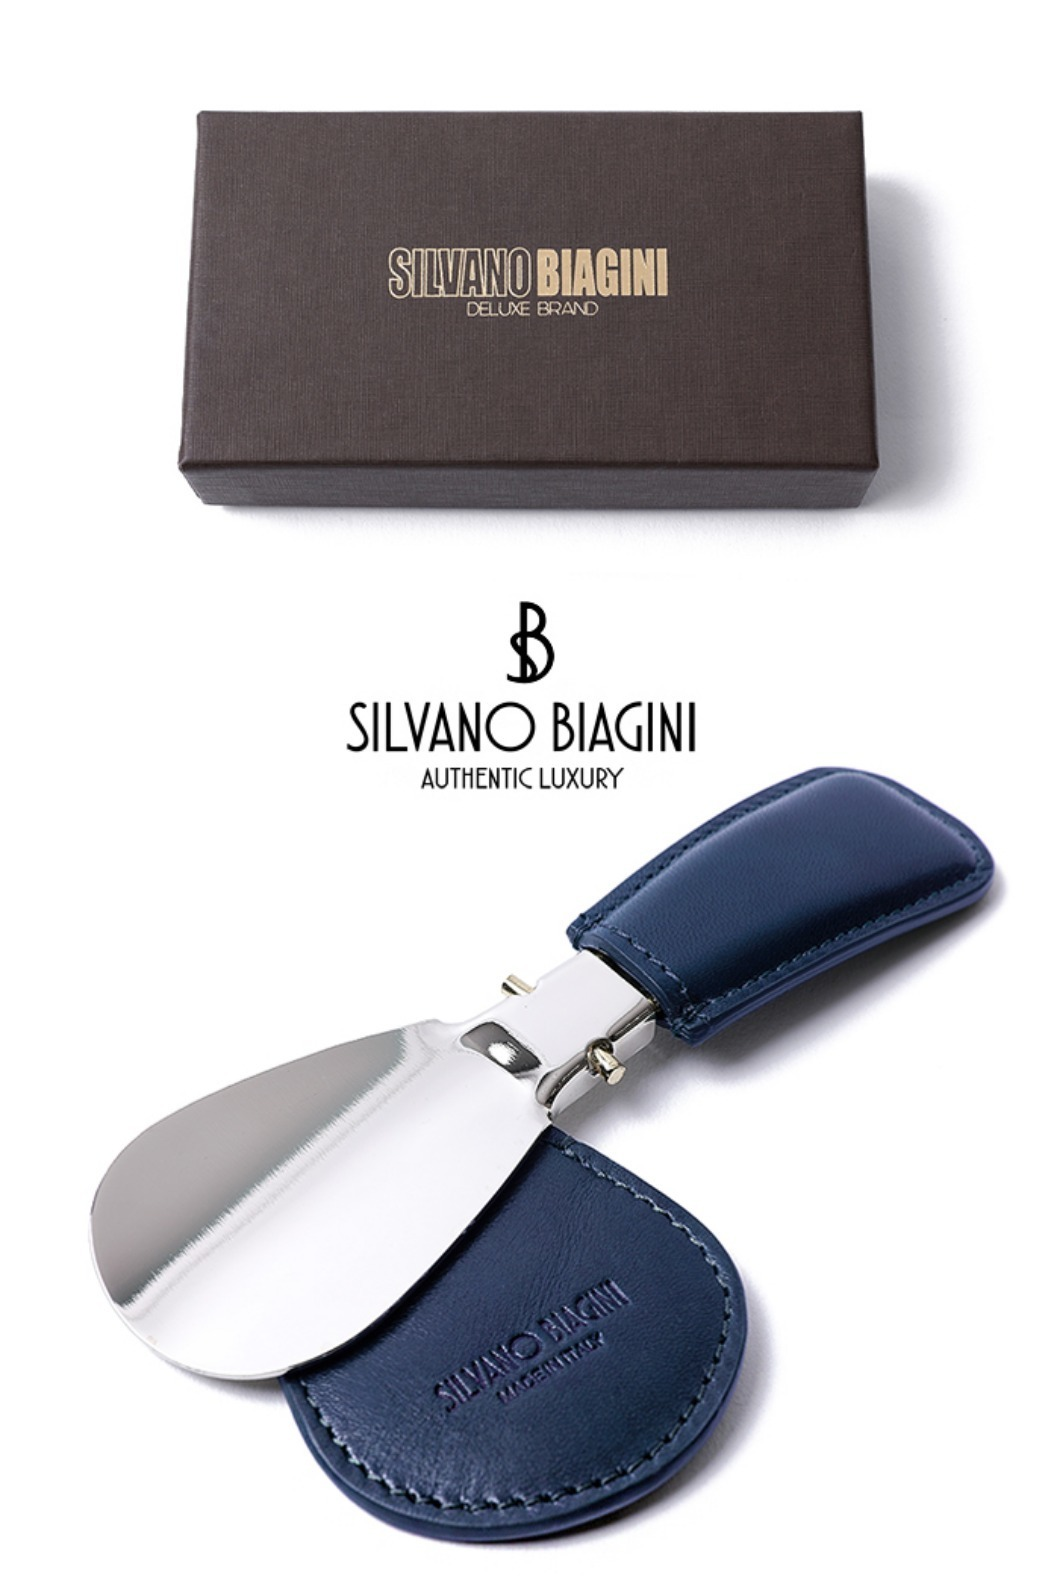 SILVANO BIAGINI SHOE HORN-NAVYSPECIAL ORDER-MADE IN ITALY